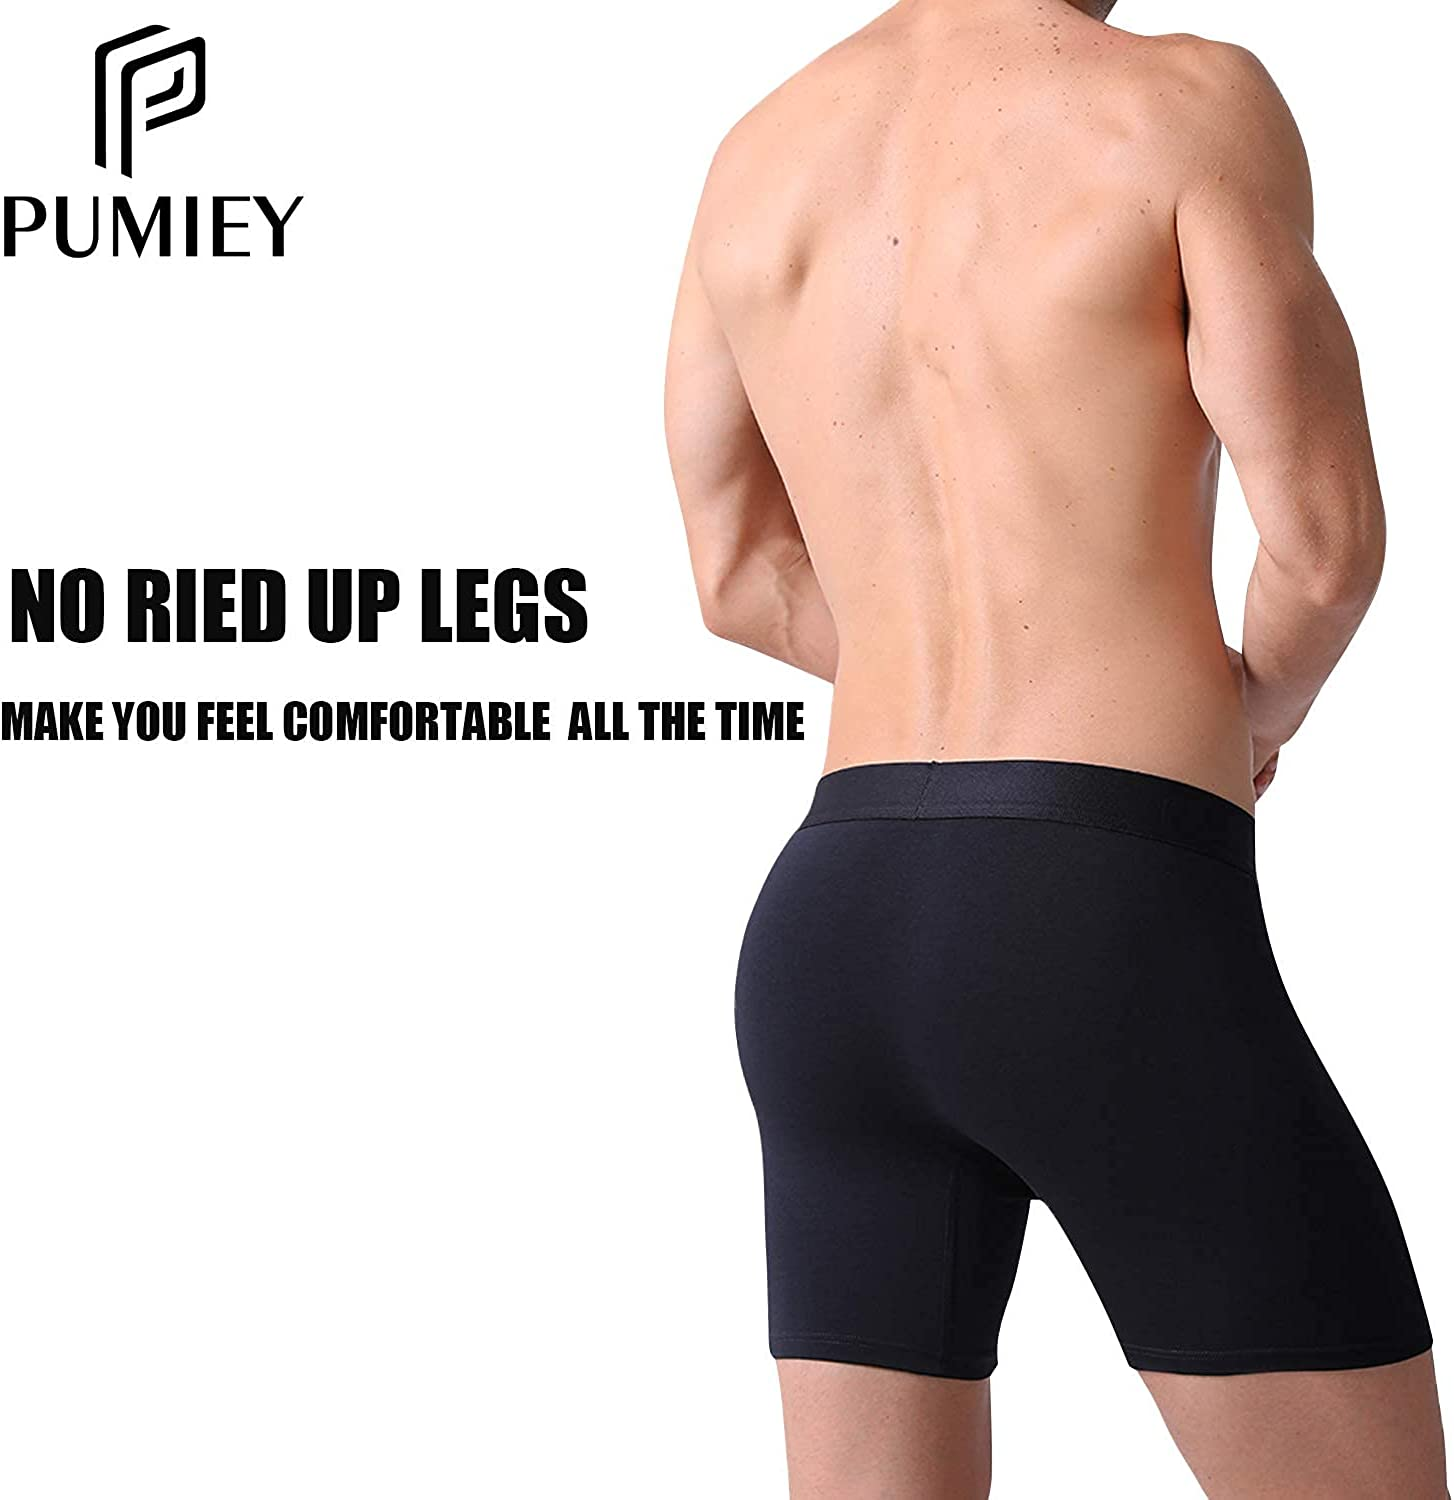 Pumiey Men's Boxer Briefs With Pouch Cotton Long One Fly Low Ries Boxer Briefs Underwear 5 Pack S M L XL XXL